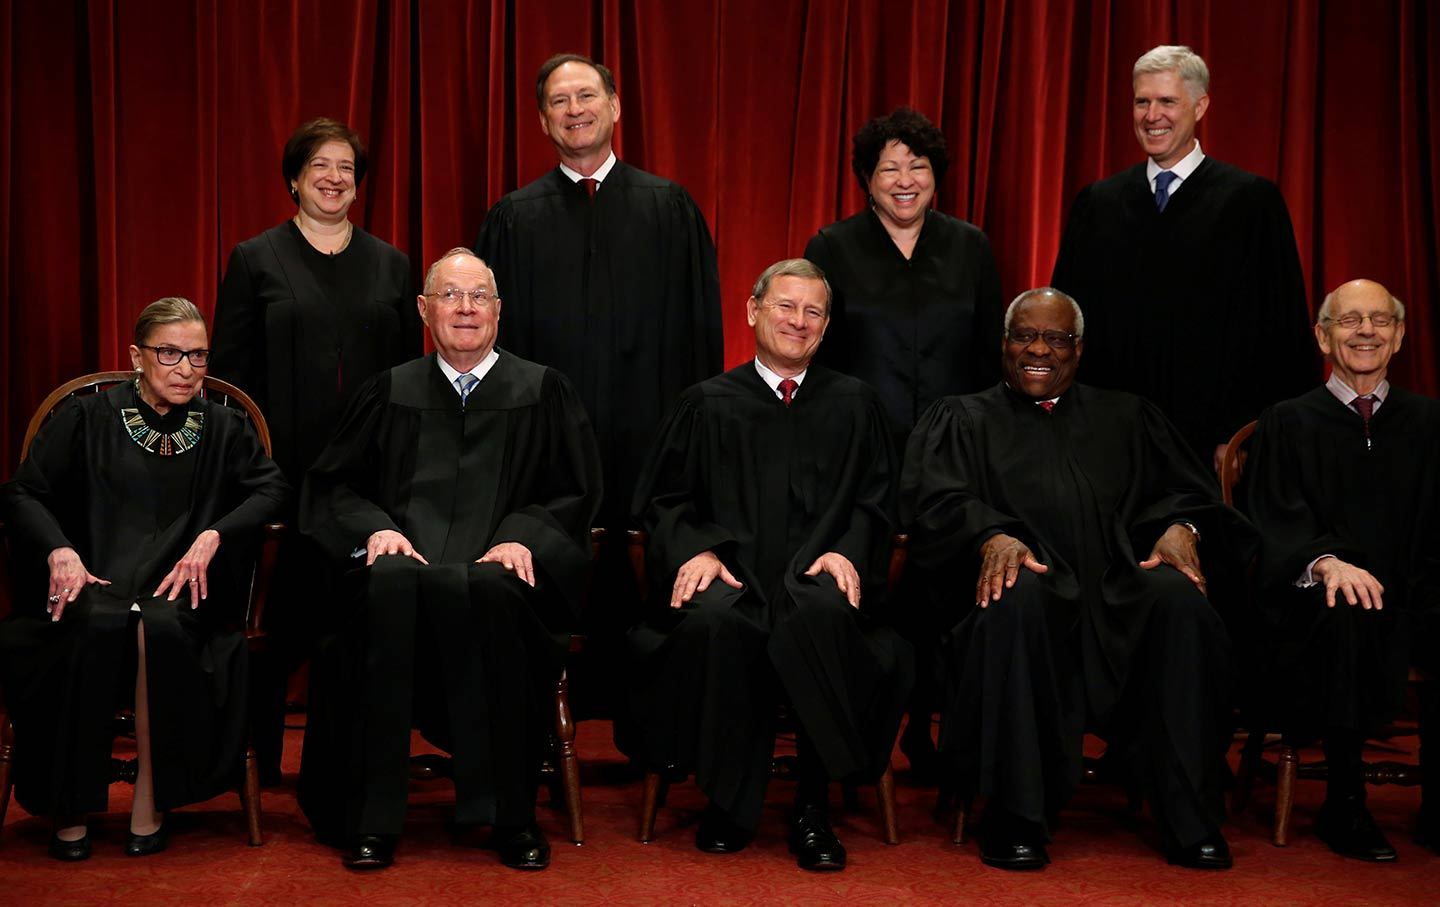 essays on supreme court justices Free essay: she then took this role in august 2009 where she has served ever since (biographies of current justices of the supreme court) in the.